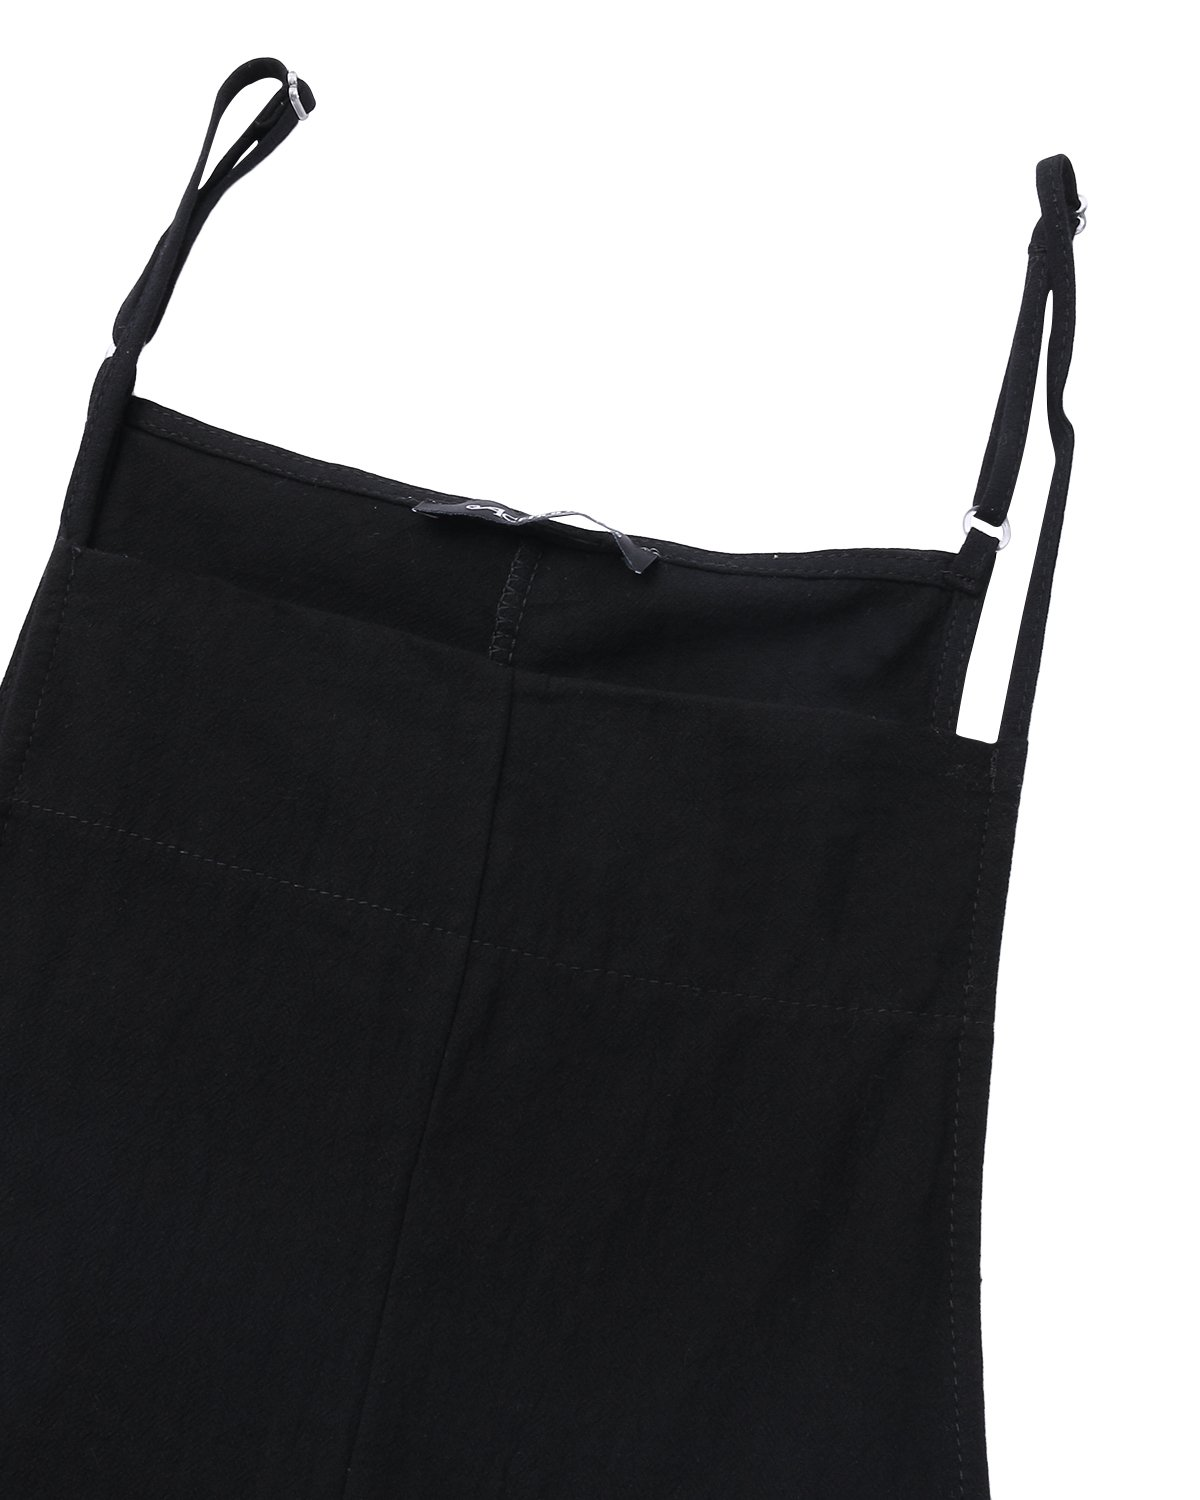 StyleDome Fashion Women Casual Loose Cotton Solid Jumpsuit Long Suspender Overalls Bib Pants Plus Size Romper Black Small by StyleDome (Image #4)